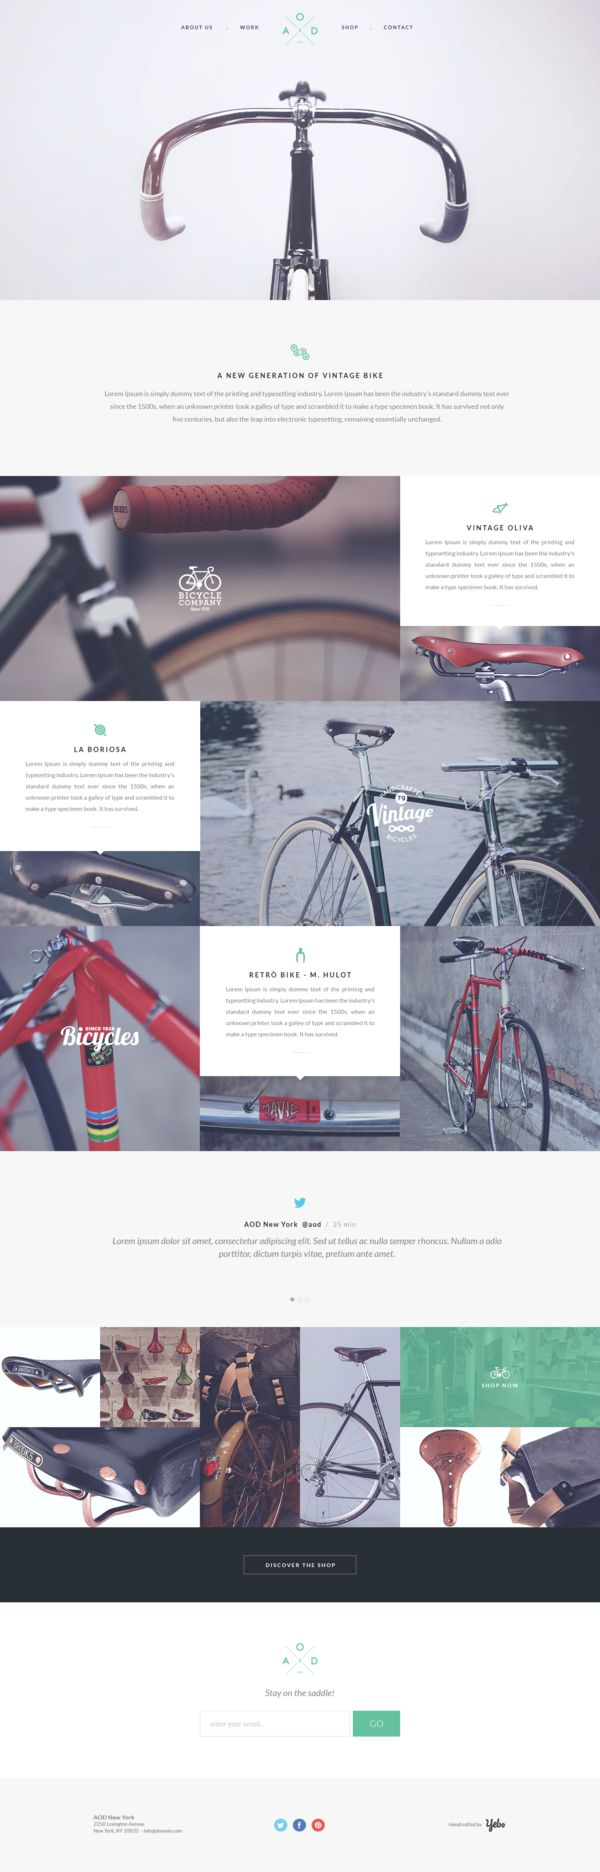 Bicycle flat PSD template Download: http://graphicsbay.com/item/bicycle-flat-psd-template/149